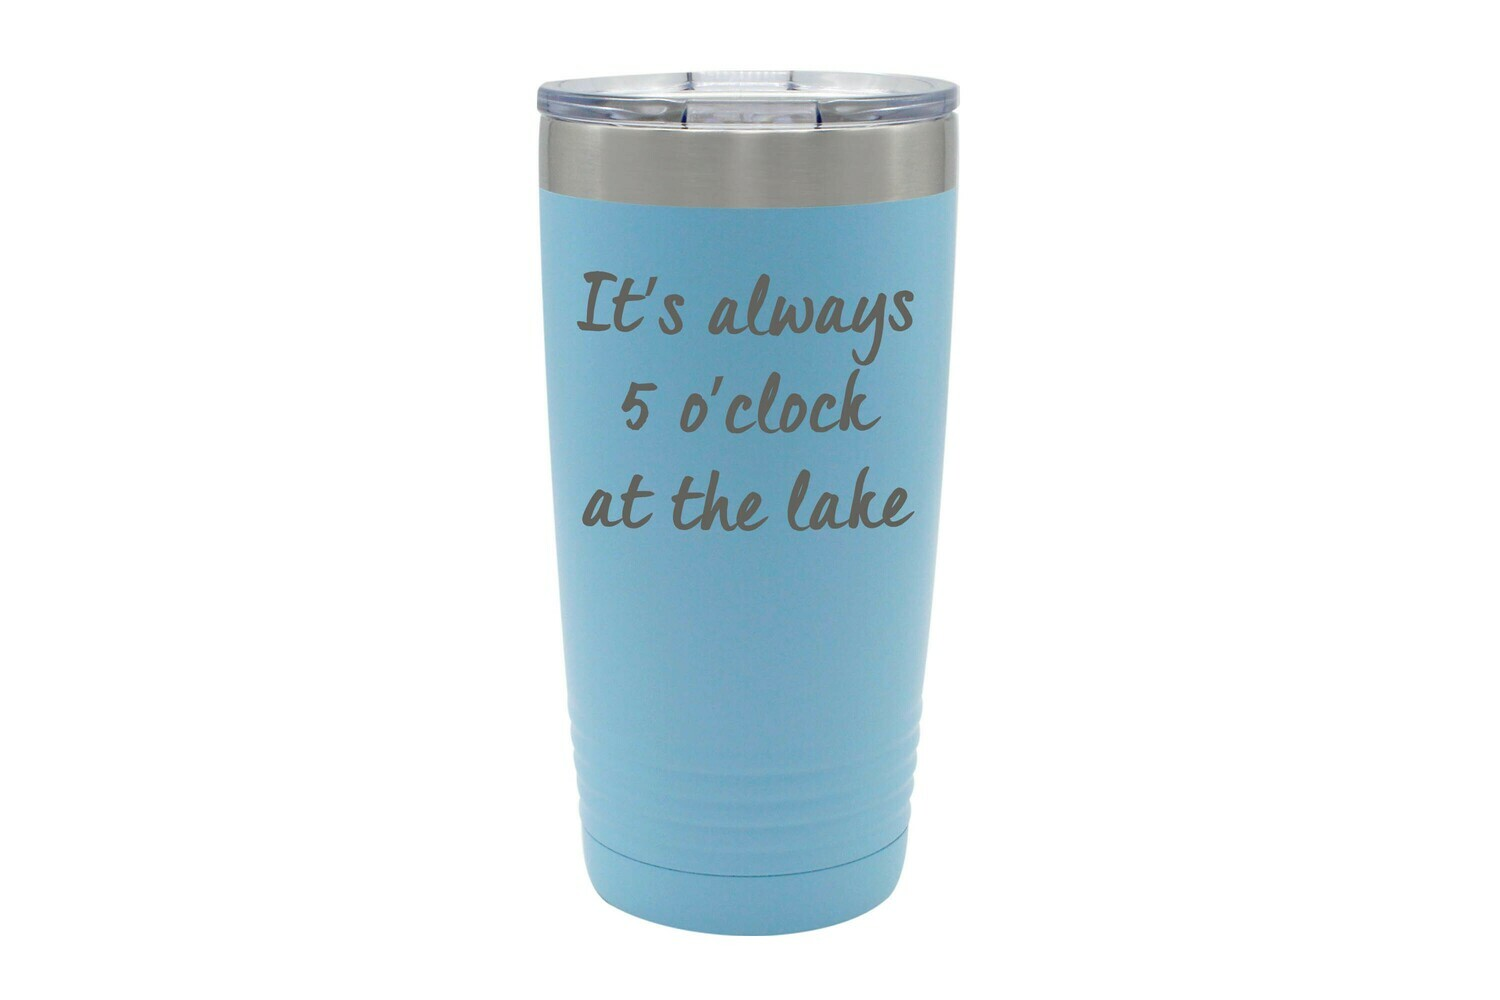 It's Always 5 O'clock at the Lake/Beach Insulated Tumbler 20 oz